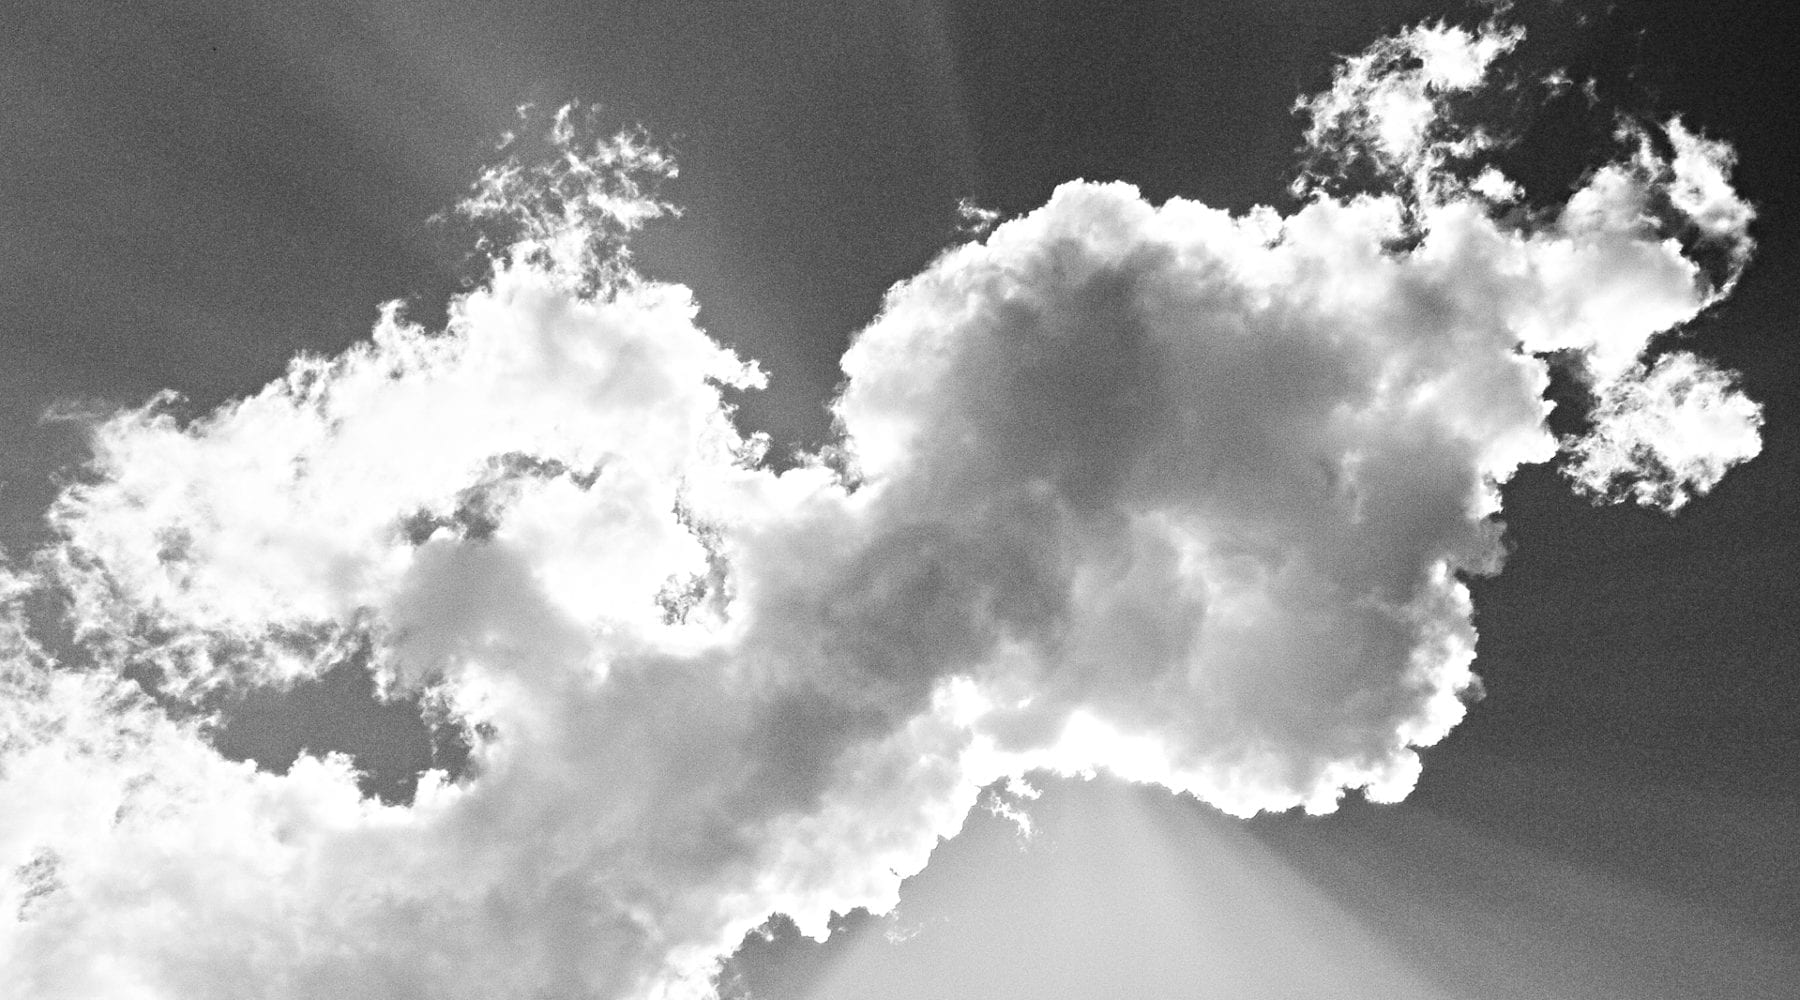 When Political Corruption Clouds Our View, Find the Silver Lining